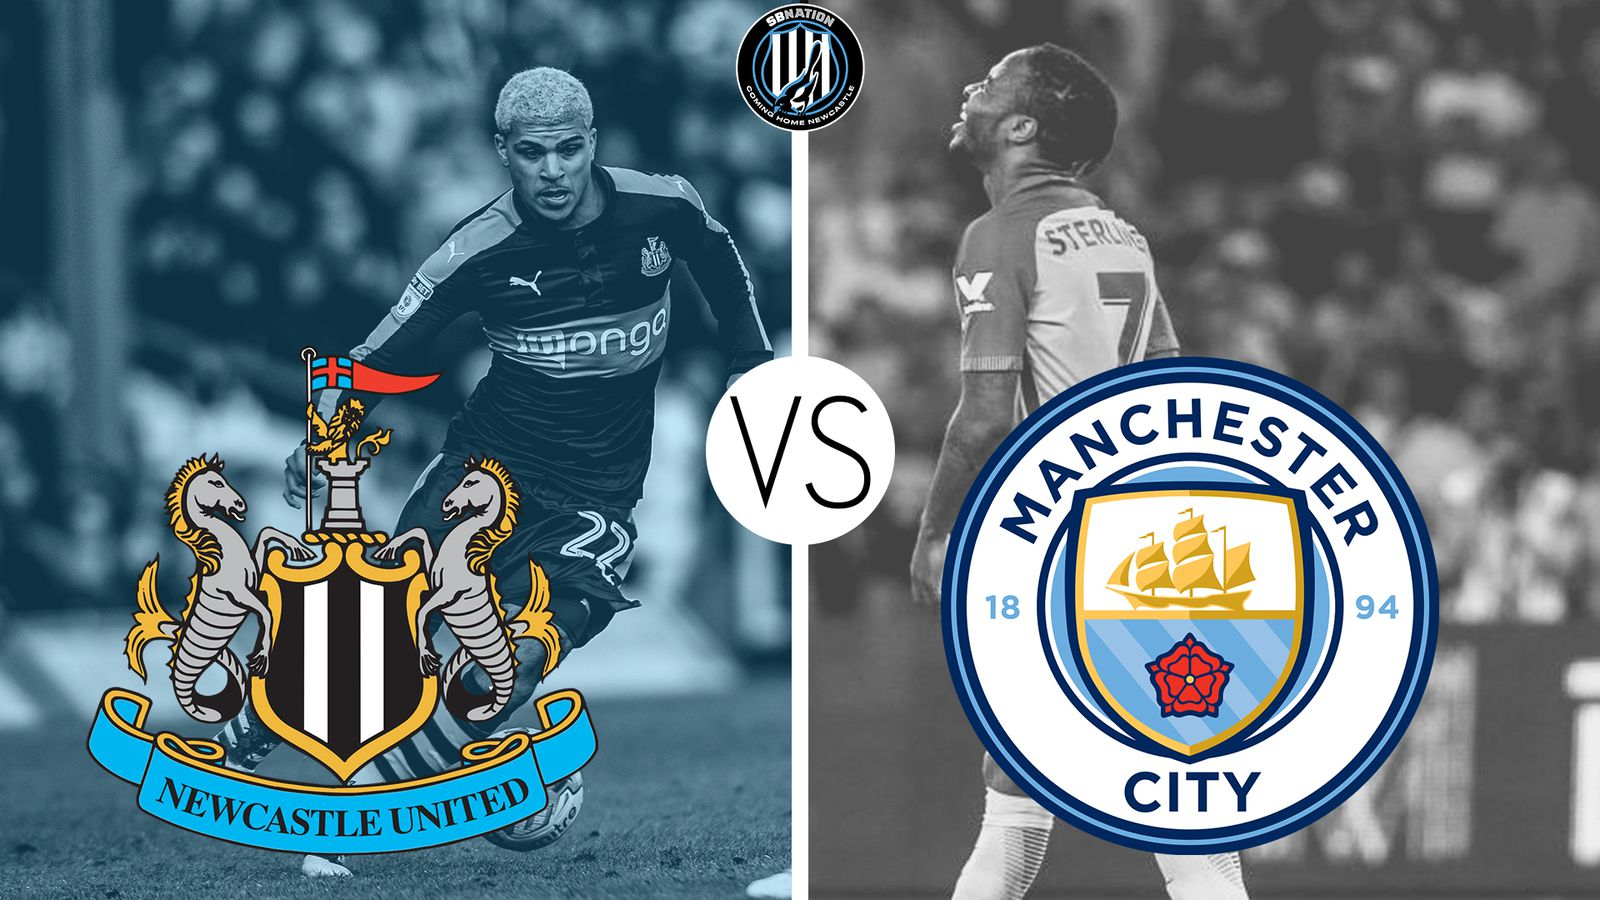 Newcastle_vs_man_city.0